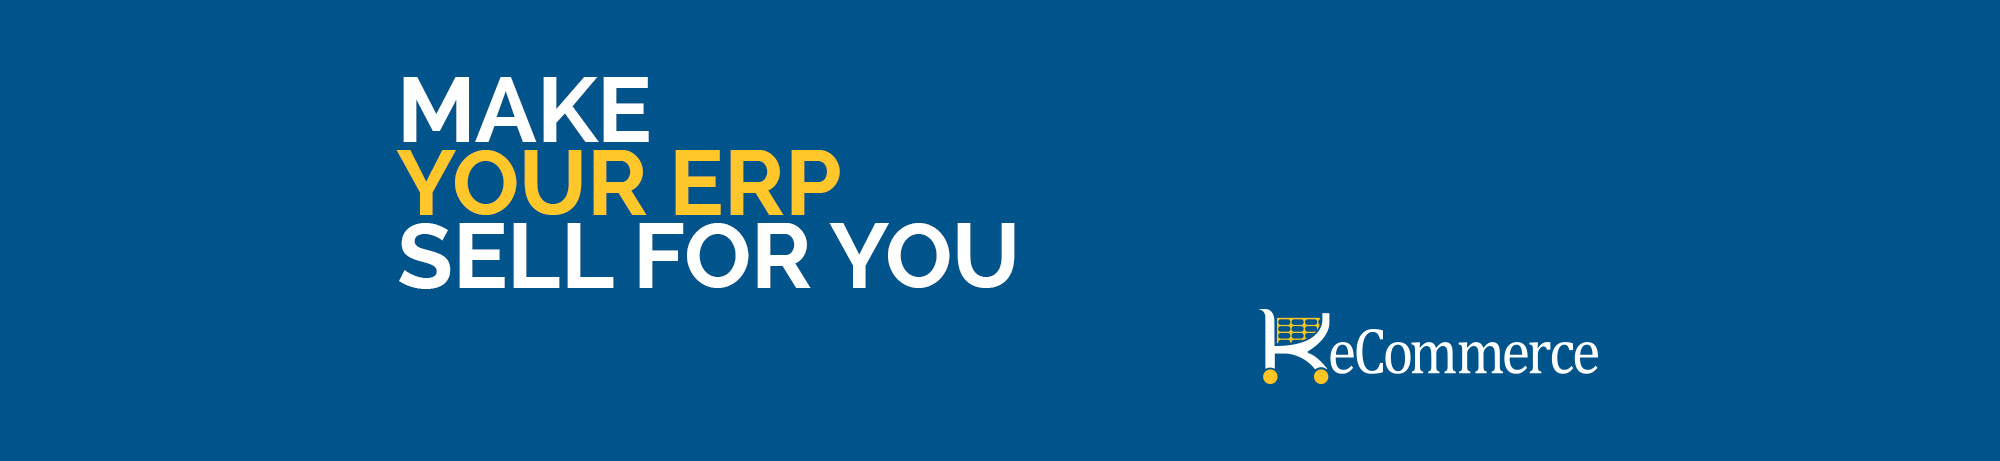 Make Your ERP Sell For You